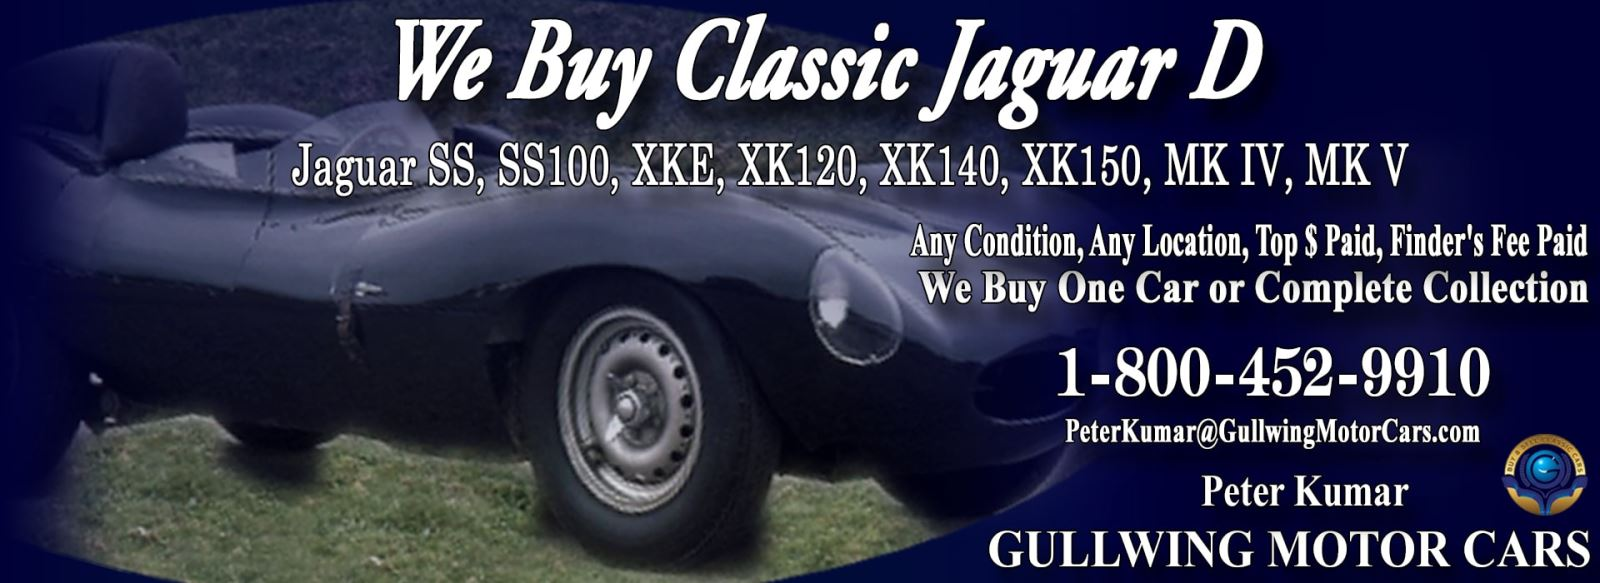 Classic Jaguar for sale, we buy vintage Jaguar D-Type. Call Peter Kumar. Gullwing Motor